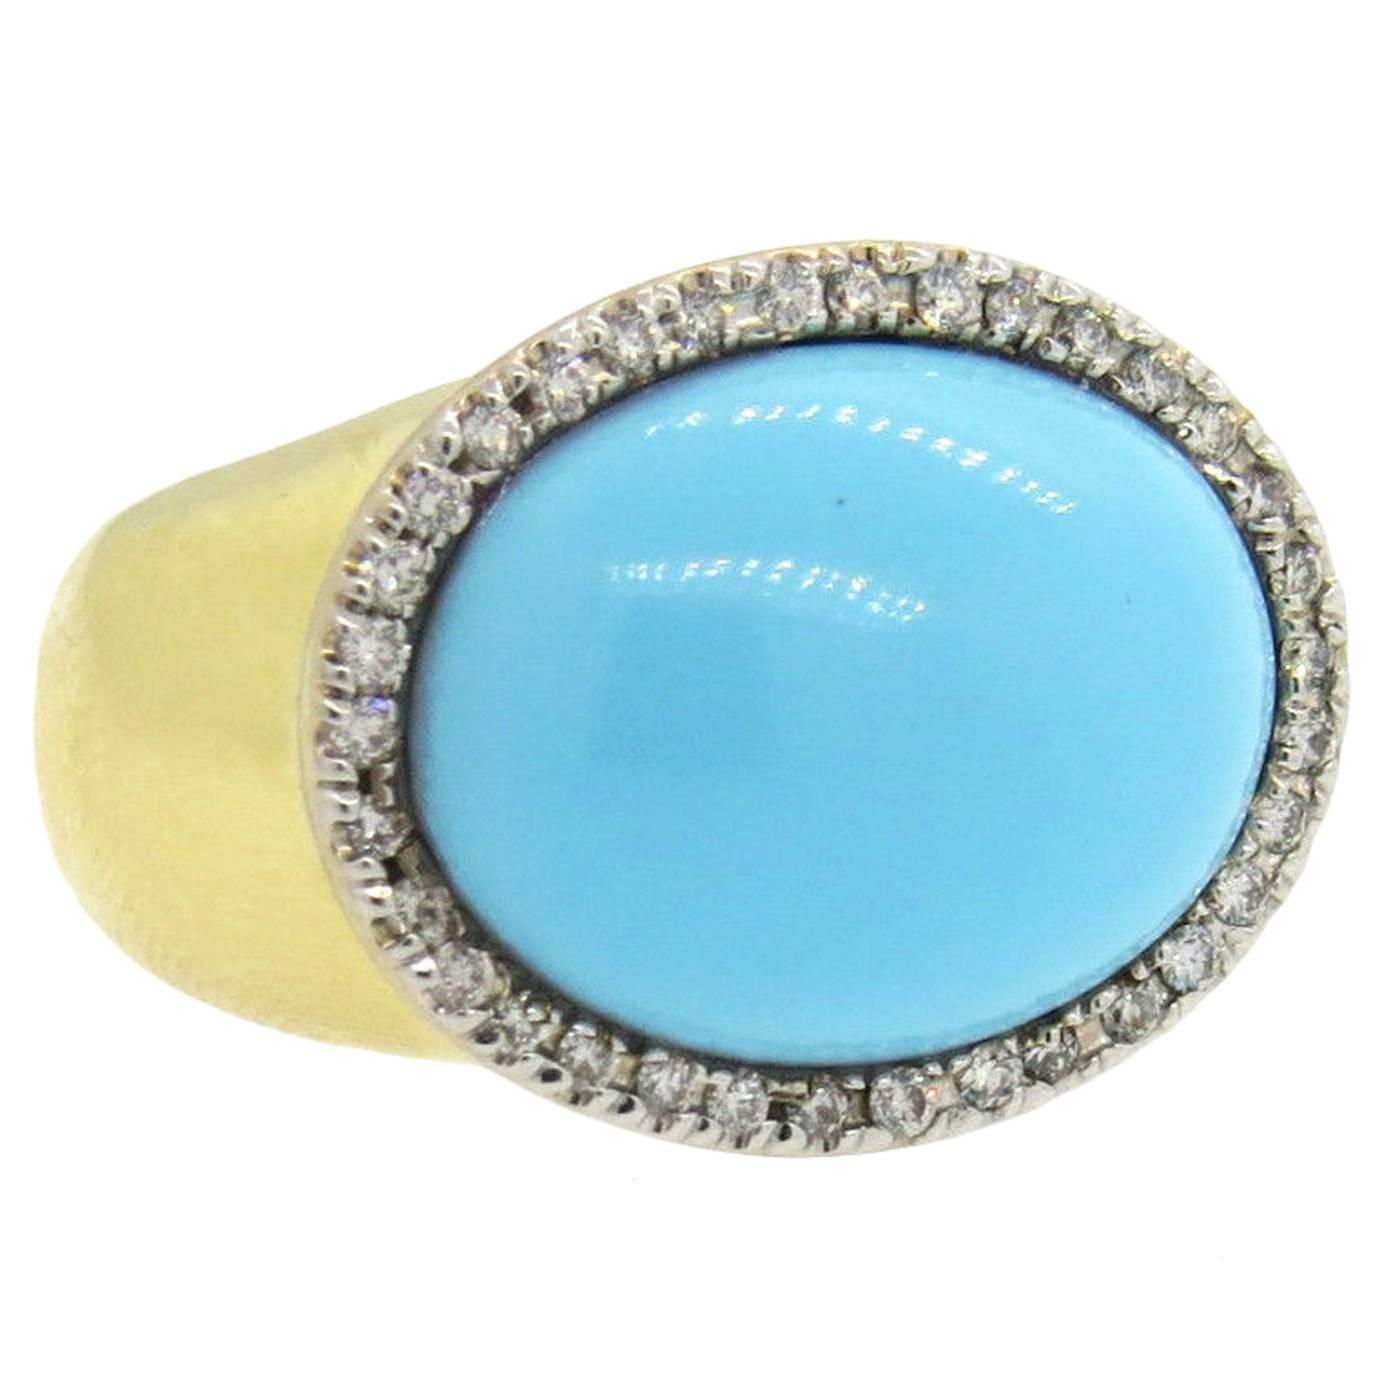 faraone mennella gold turquoise ring at 1stdibs